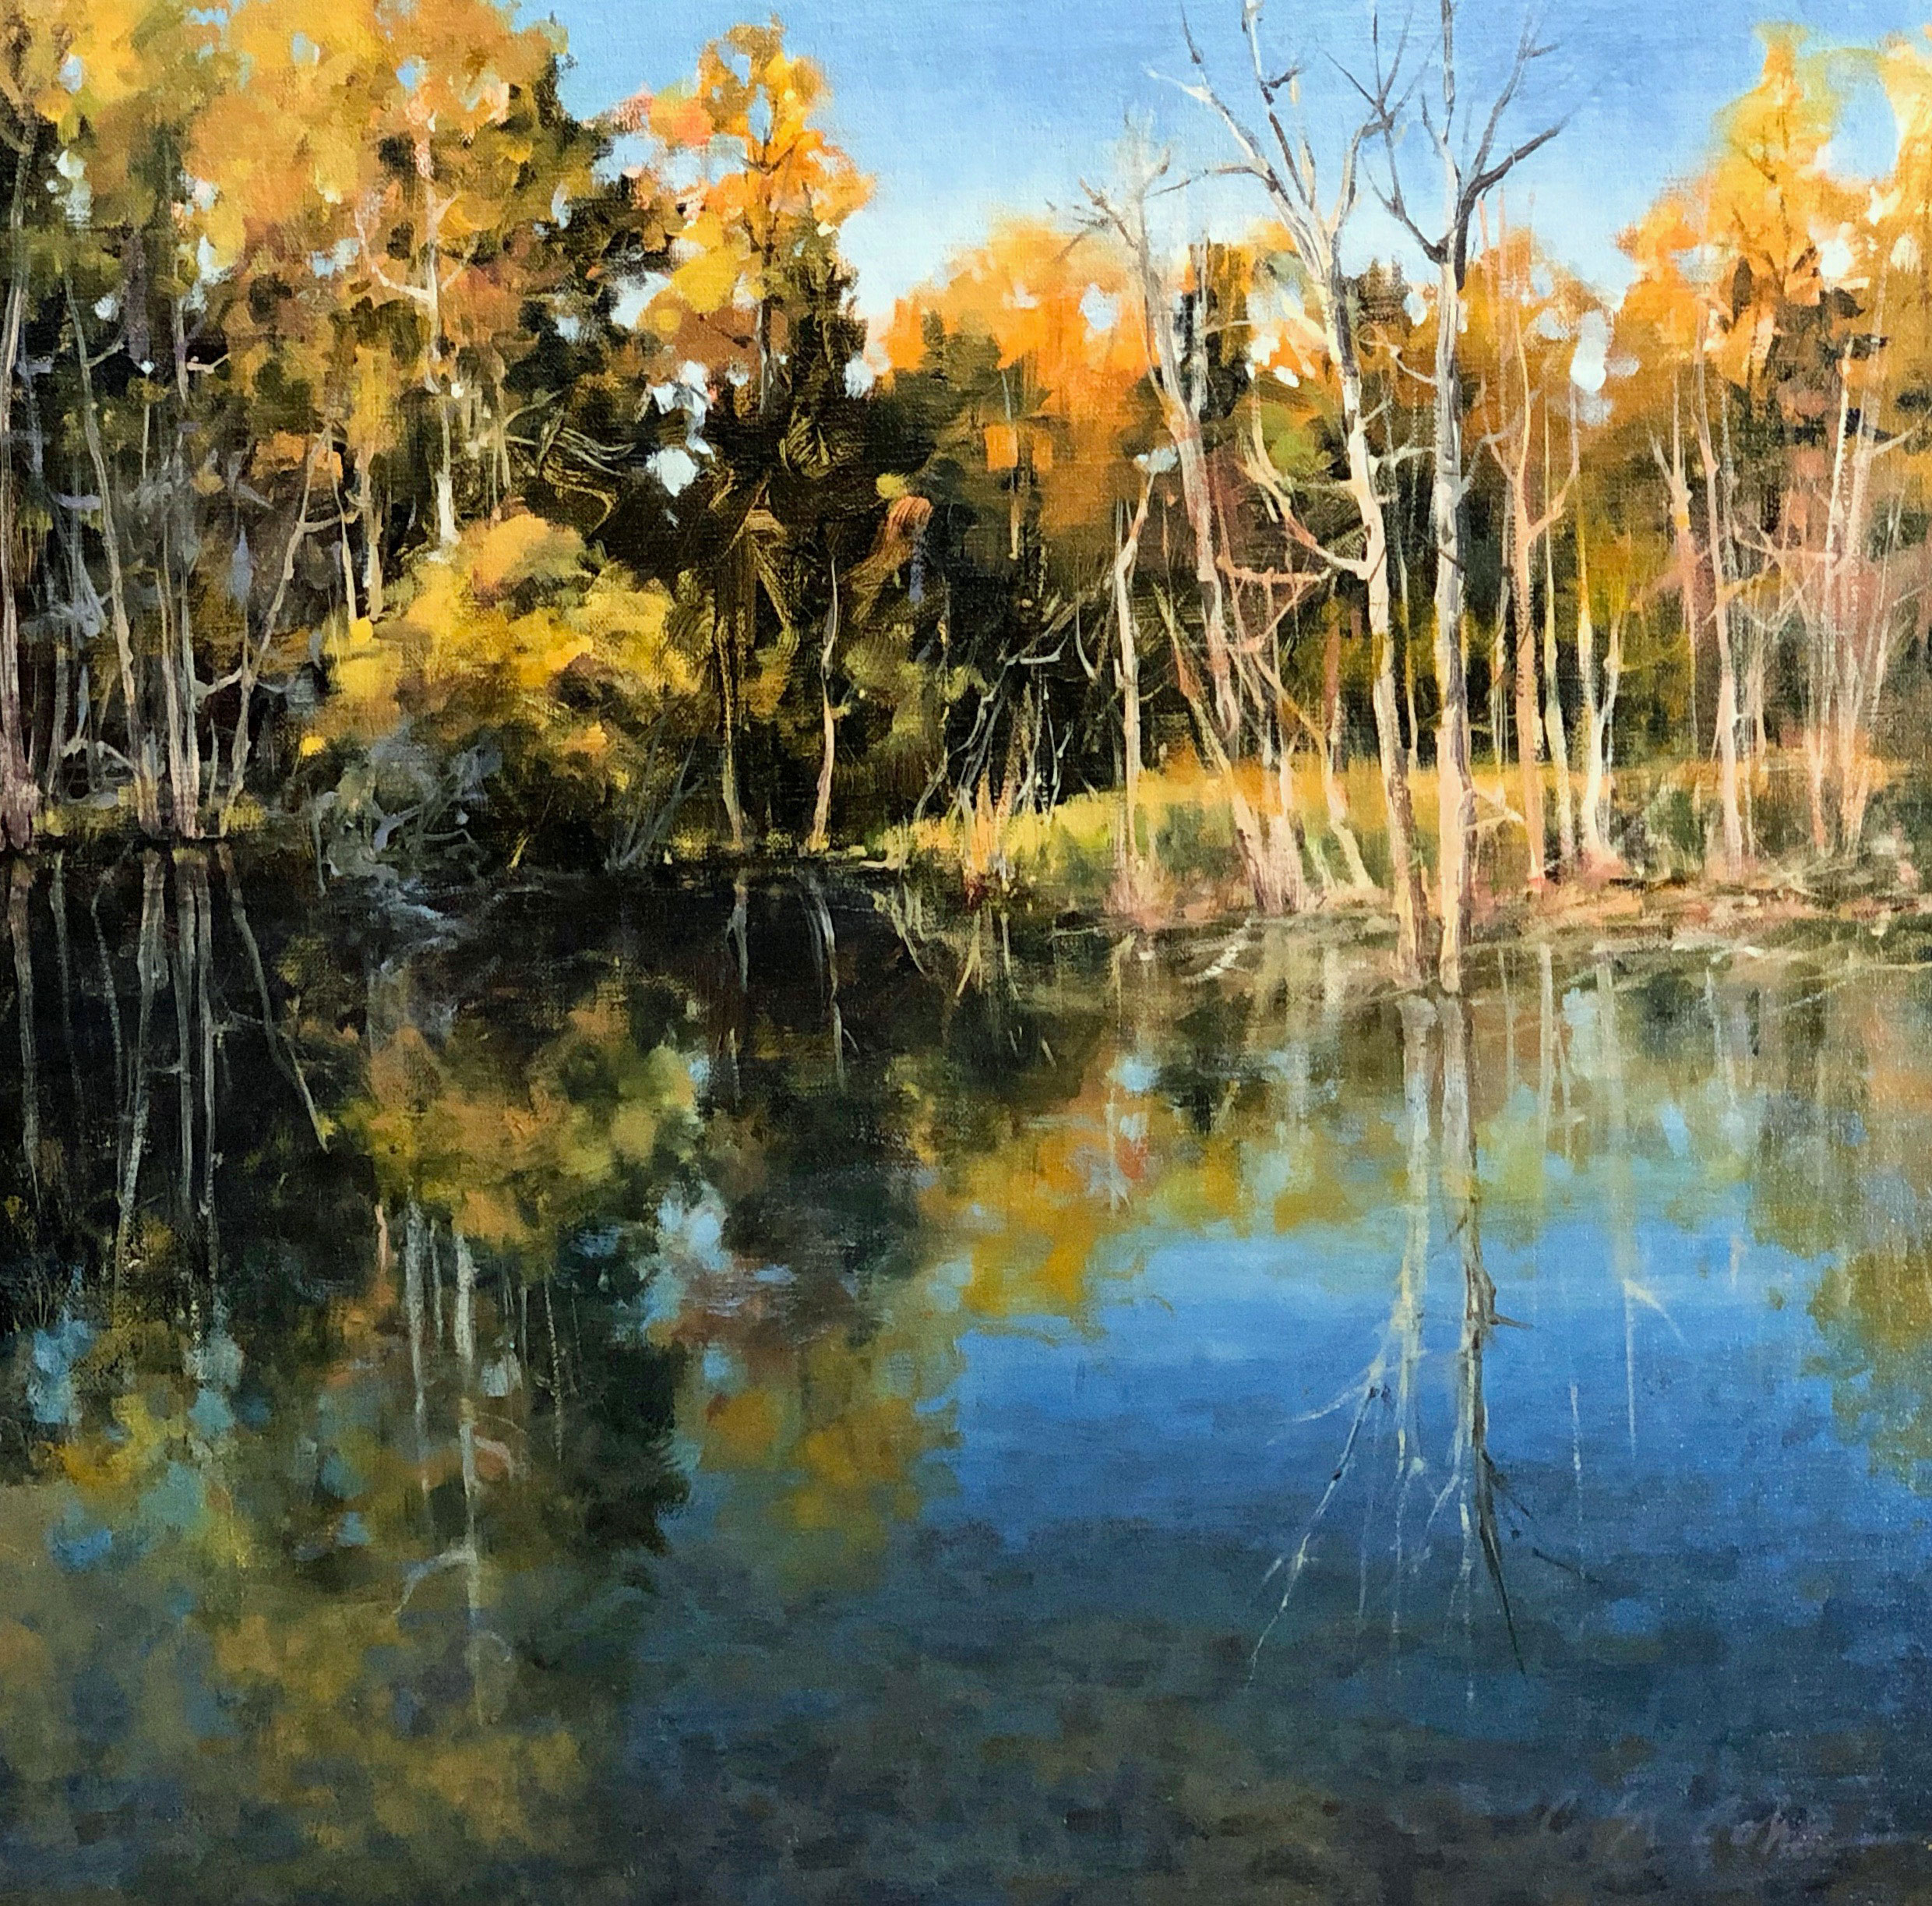 St.-John,-Cheryl,-A-Crisp-Fall-Day.18X18,oil-on-linen,-$2,750